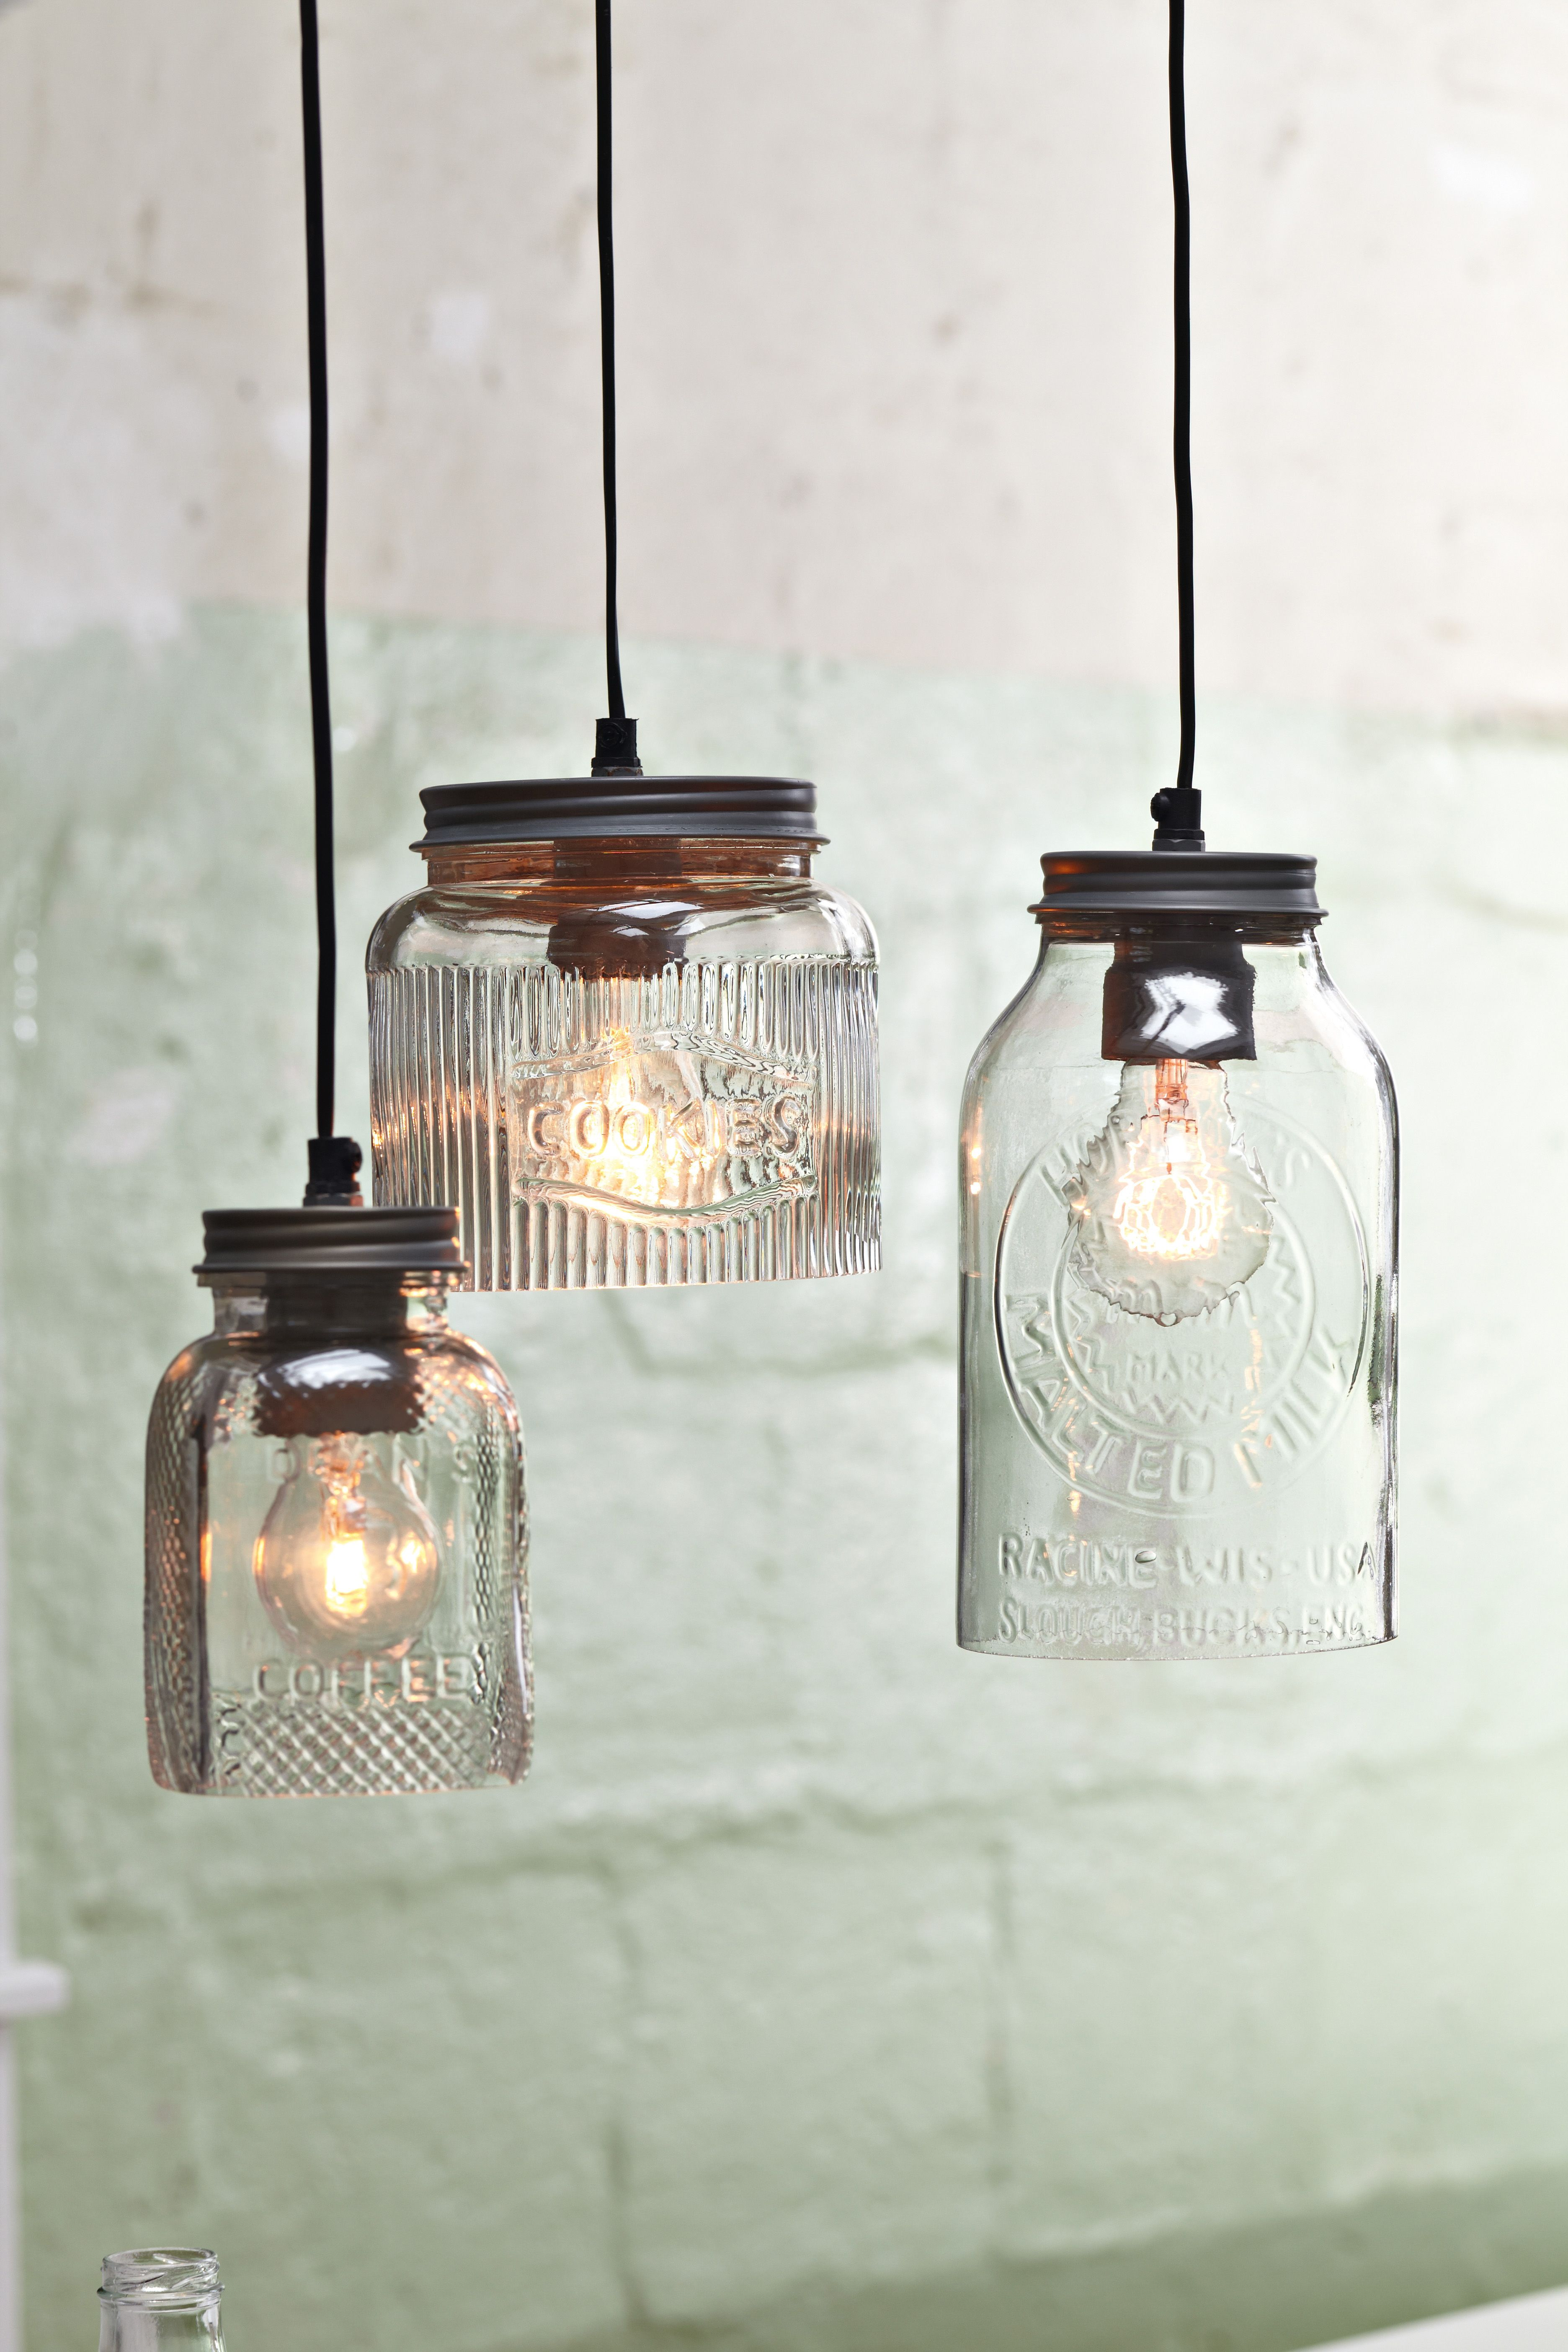 marmeladengl ser als lampe mason jar lamp impressionen moebel licht pinterest. Black Bedroom Furniture Sets. Home Design Ideas